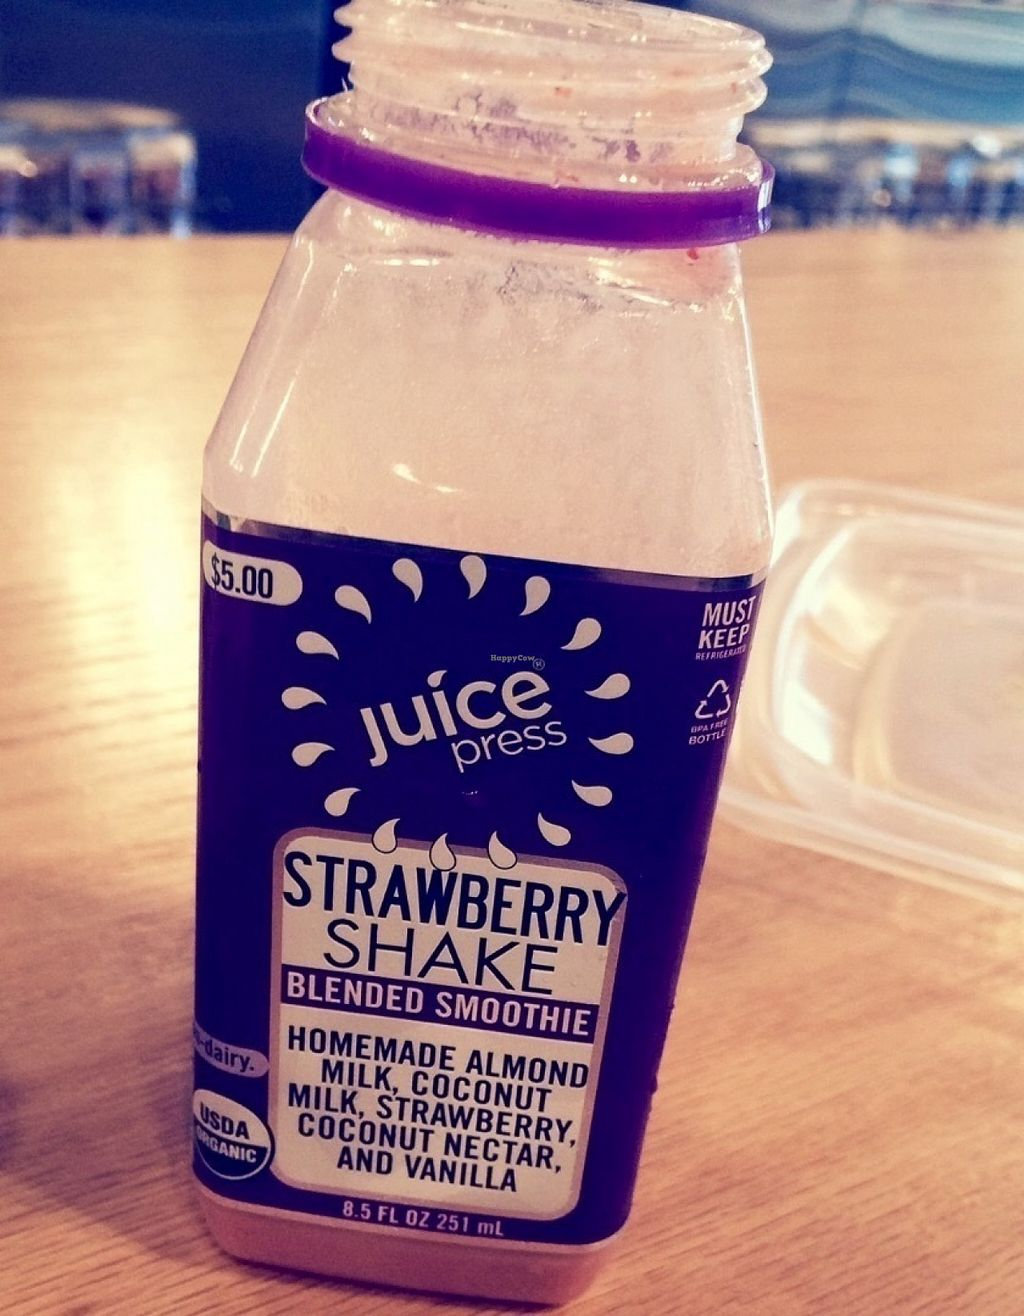 """Photo of Juice Press  by <a href=""""/members/profile/VeganVegabond"""">VeganVegabond</a> <br/>Strawberry shake to go <br/> July 26, 2016  - <a href='/contact/abuse/image/77195/162529'>Report</a>"""